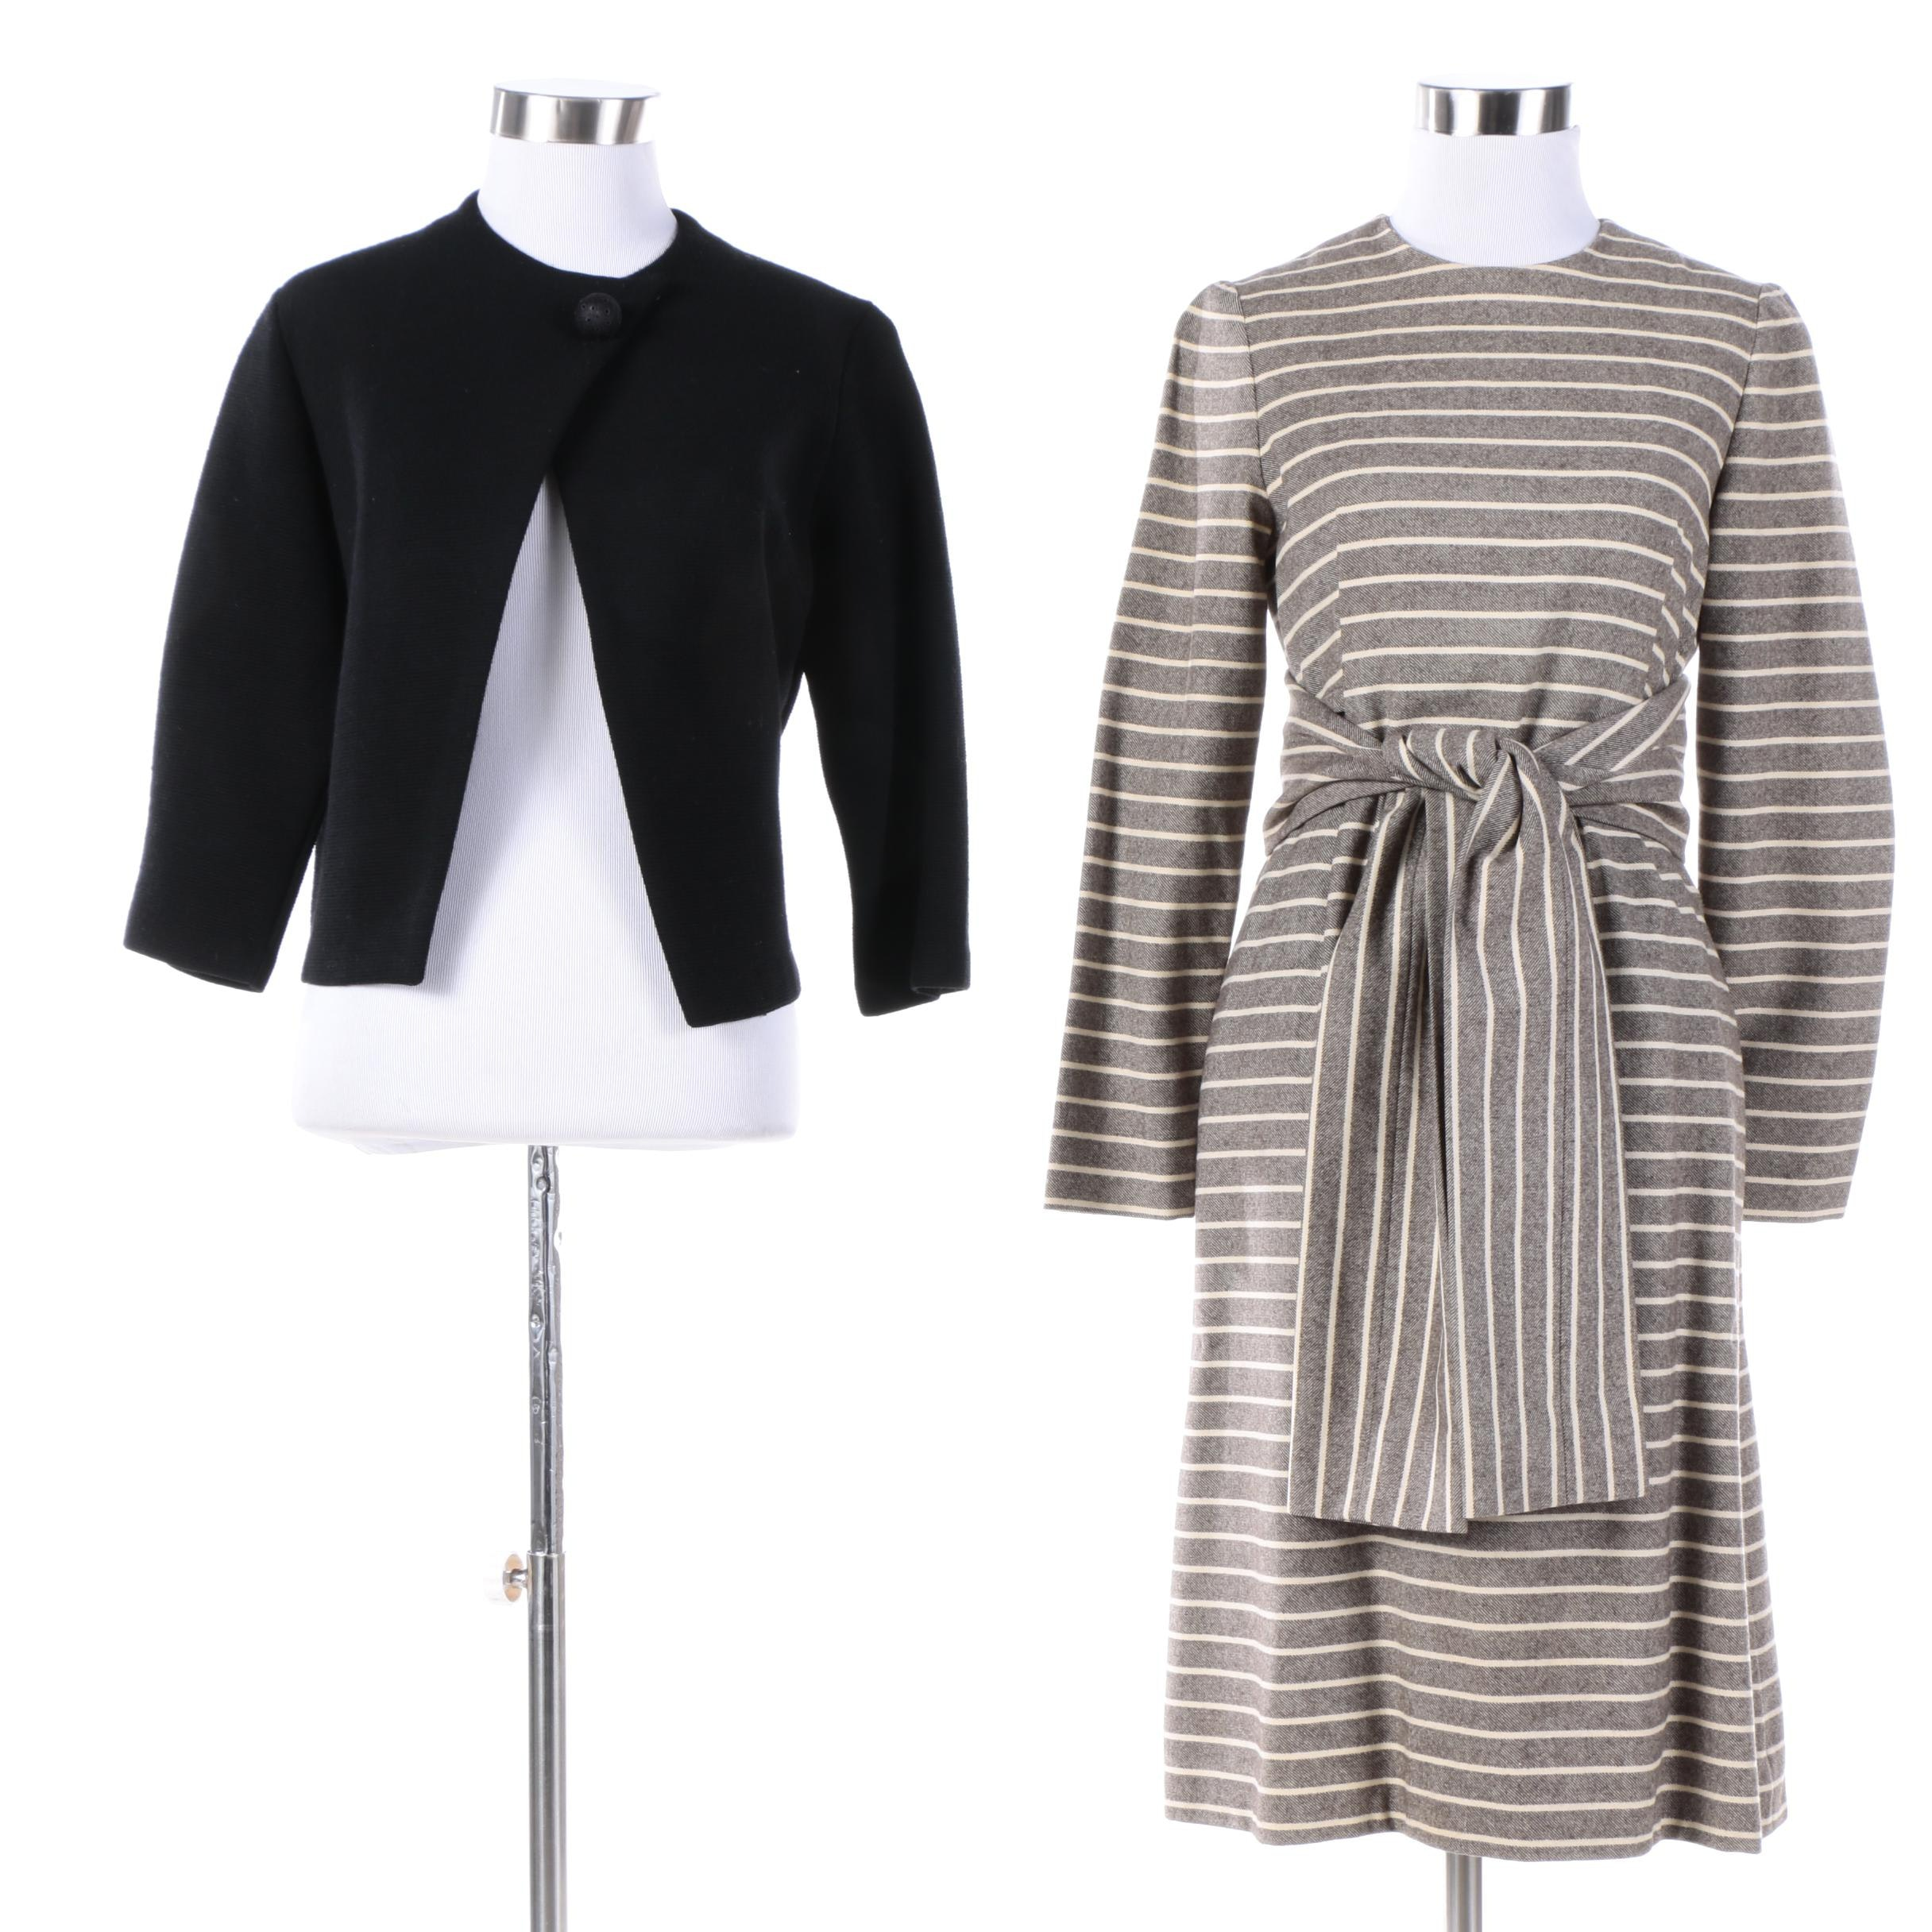 Vintage Pauline Trigere Dress and Telysa Wool Jacket